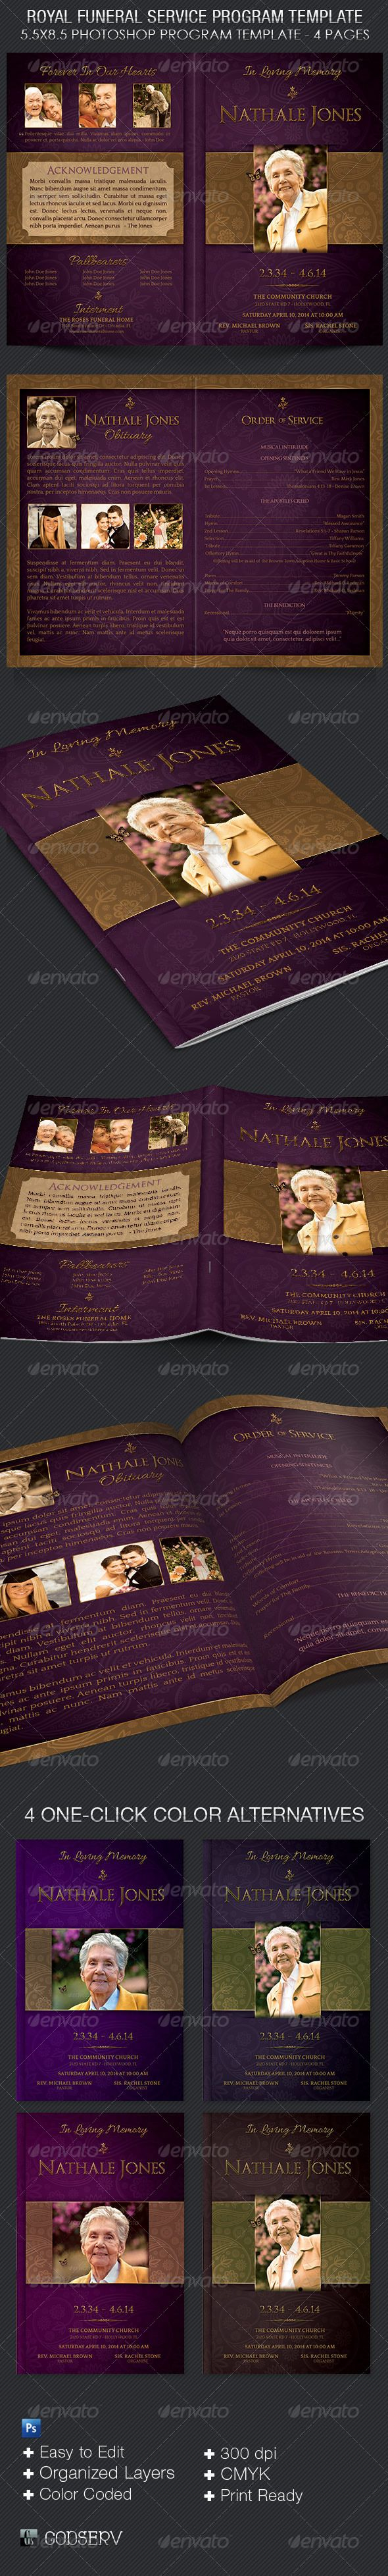 "Royal Funeral Service Program Template - $6.00 The Royal Funeral Service Program Template is for a modern commemorative or home going service. It's gold decals and text style laid over a deep purple background will honor and dignify your loved ones.  This template is easy to edit which will speed up your production schedule. All you need to do is, ""Edit, Save, Print"""